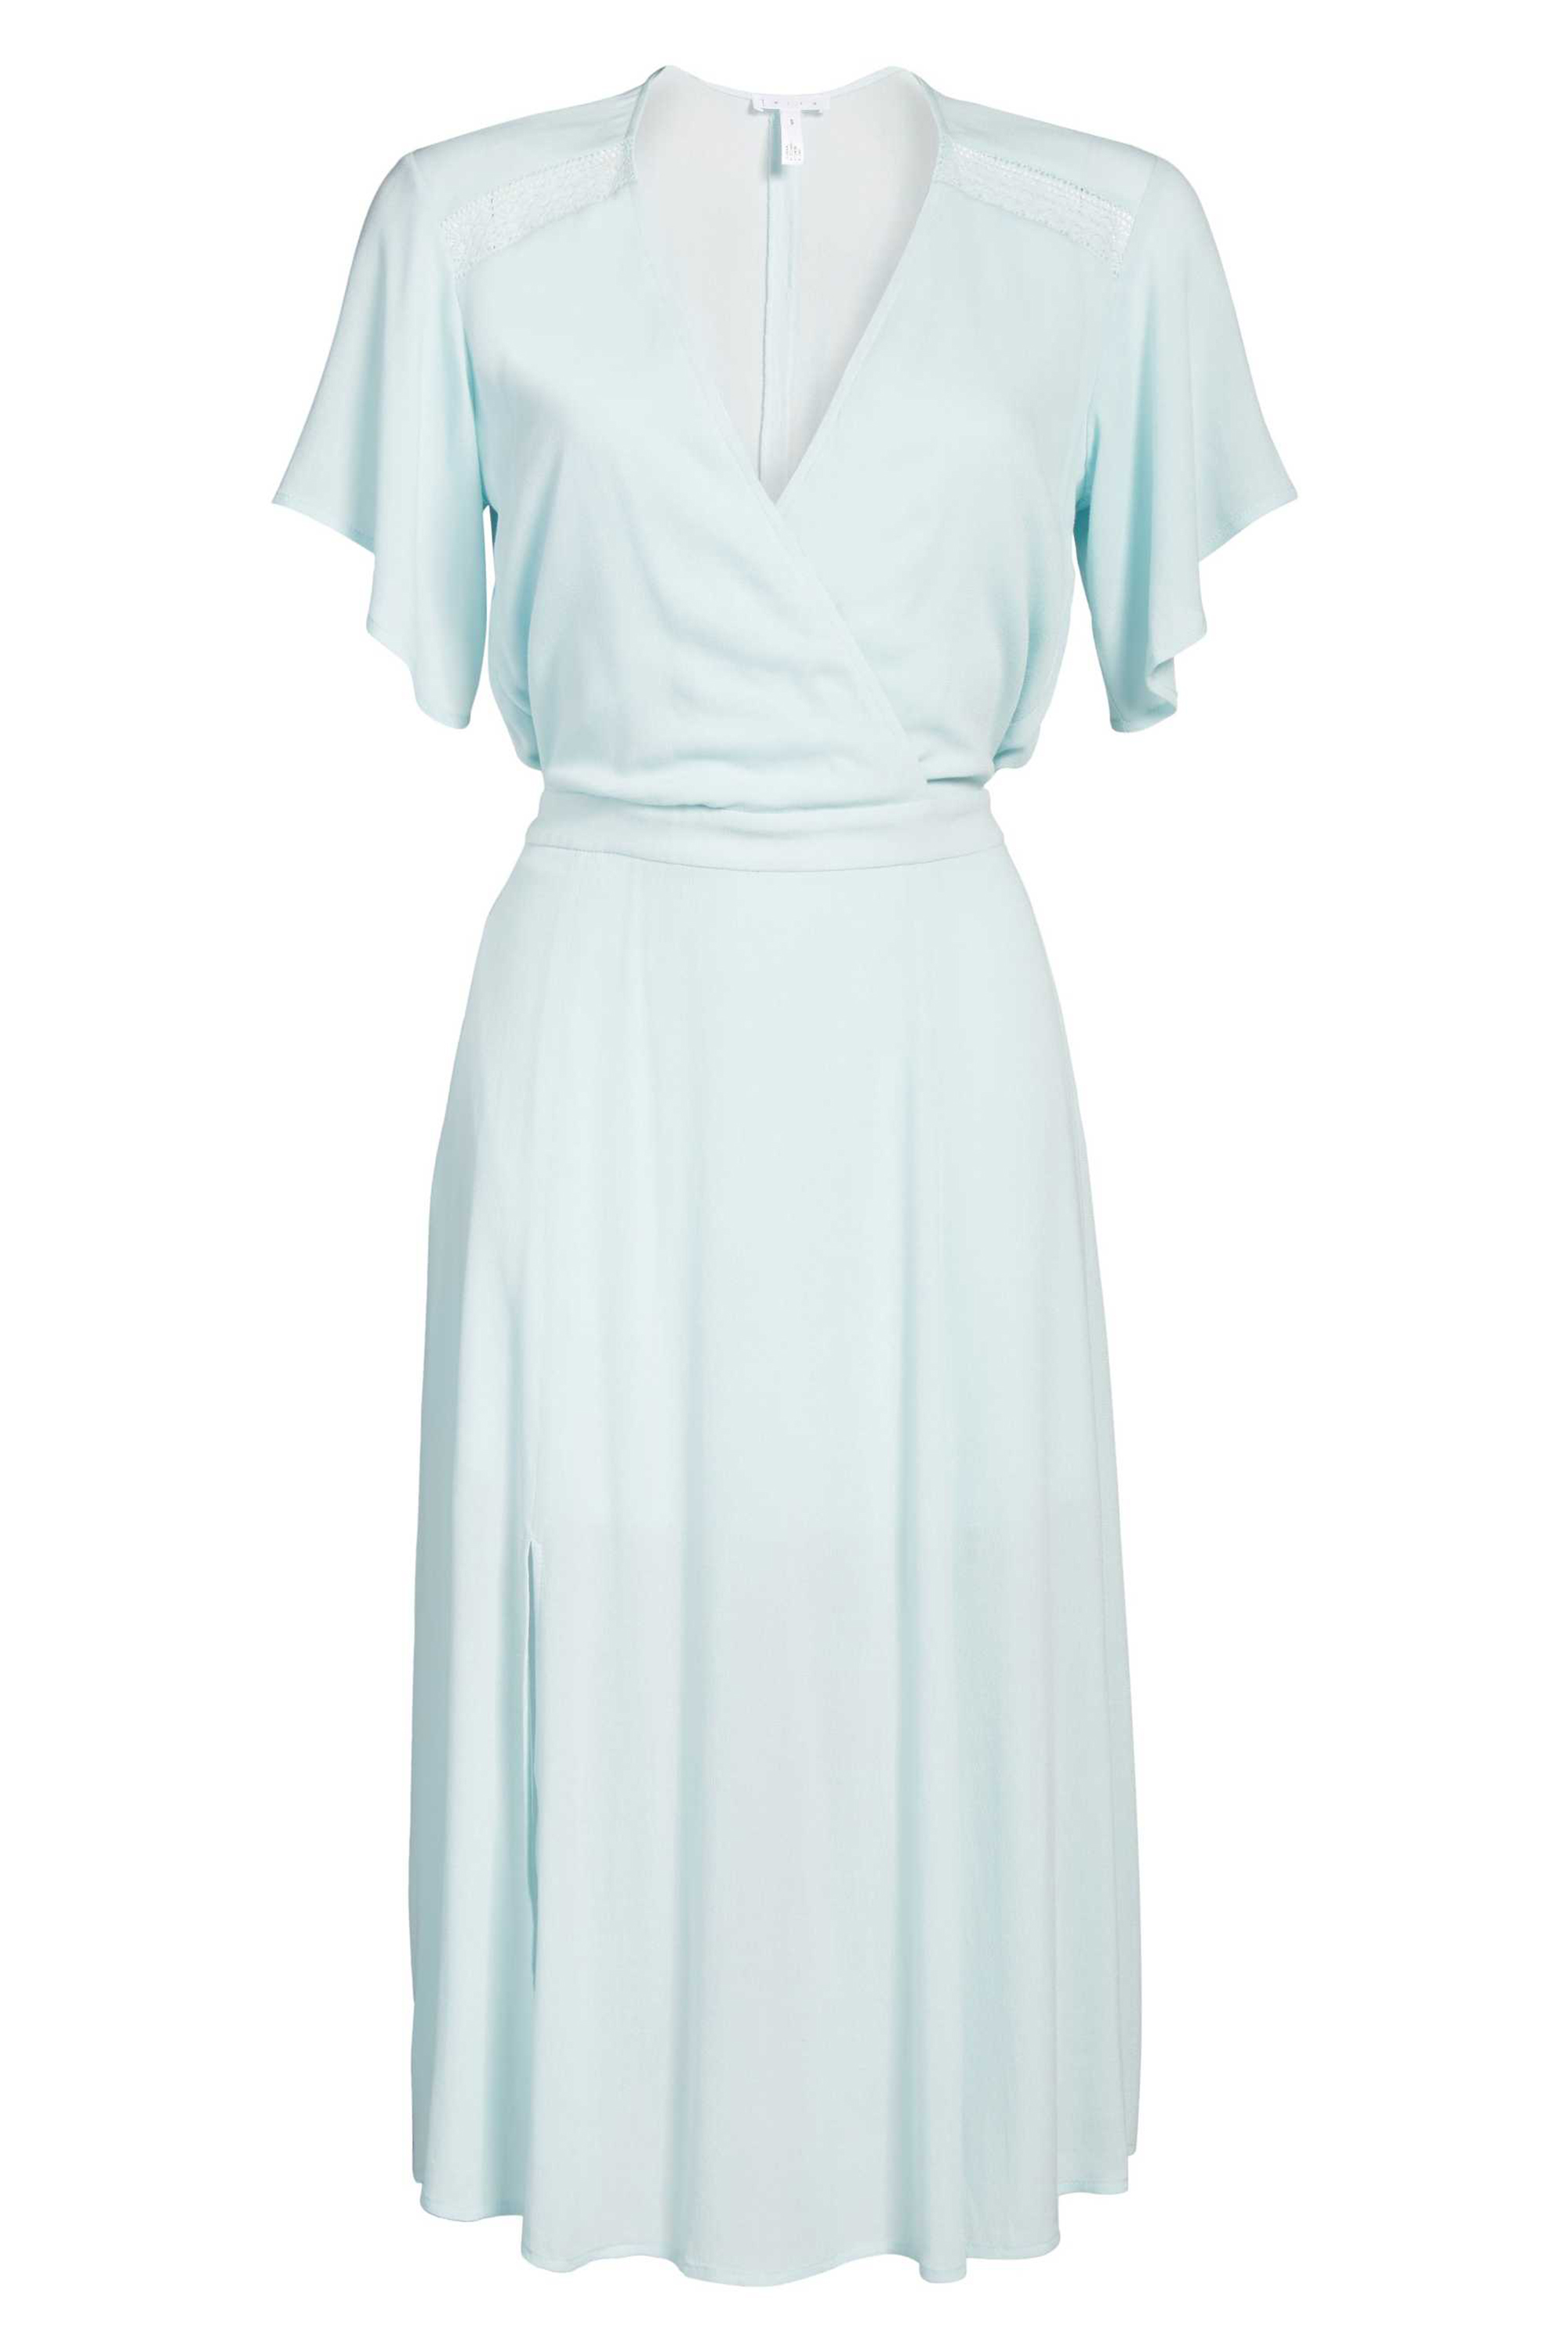 Summer dresses wedding guests great ideas for fashion for Hot dresses to wear to a wedding